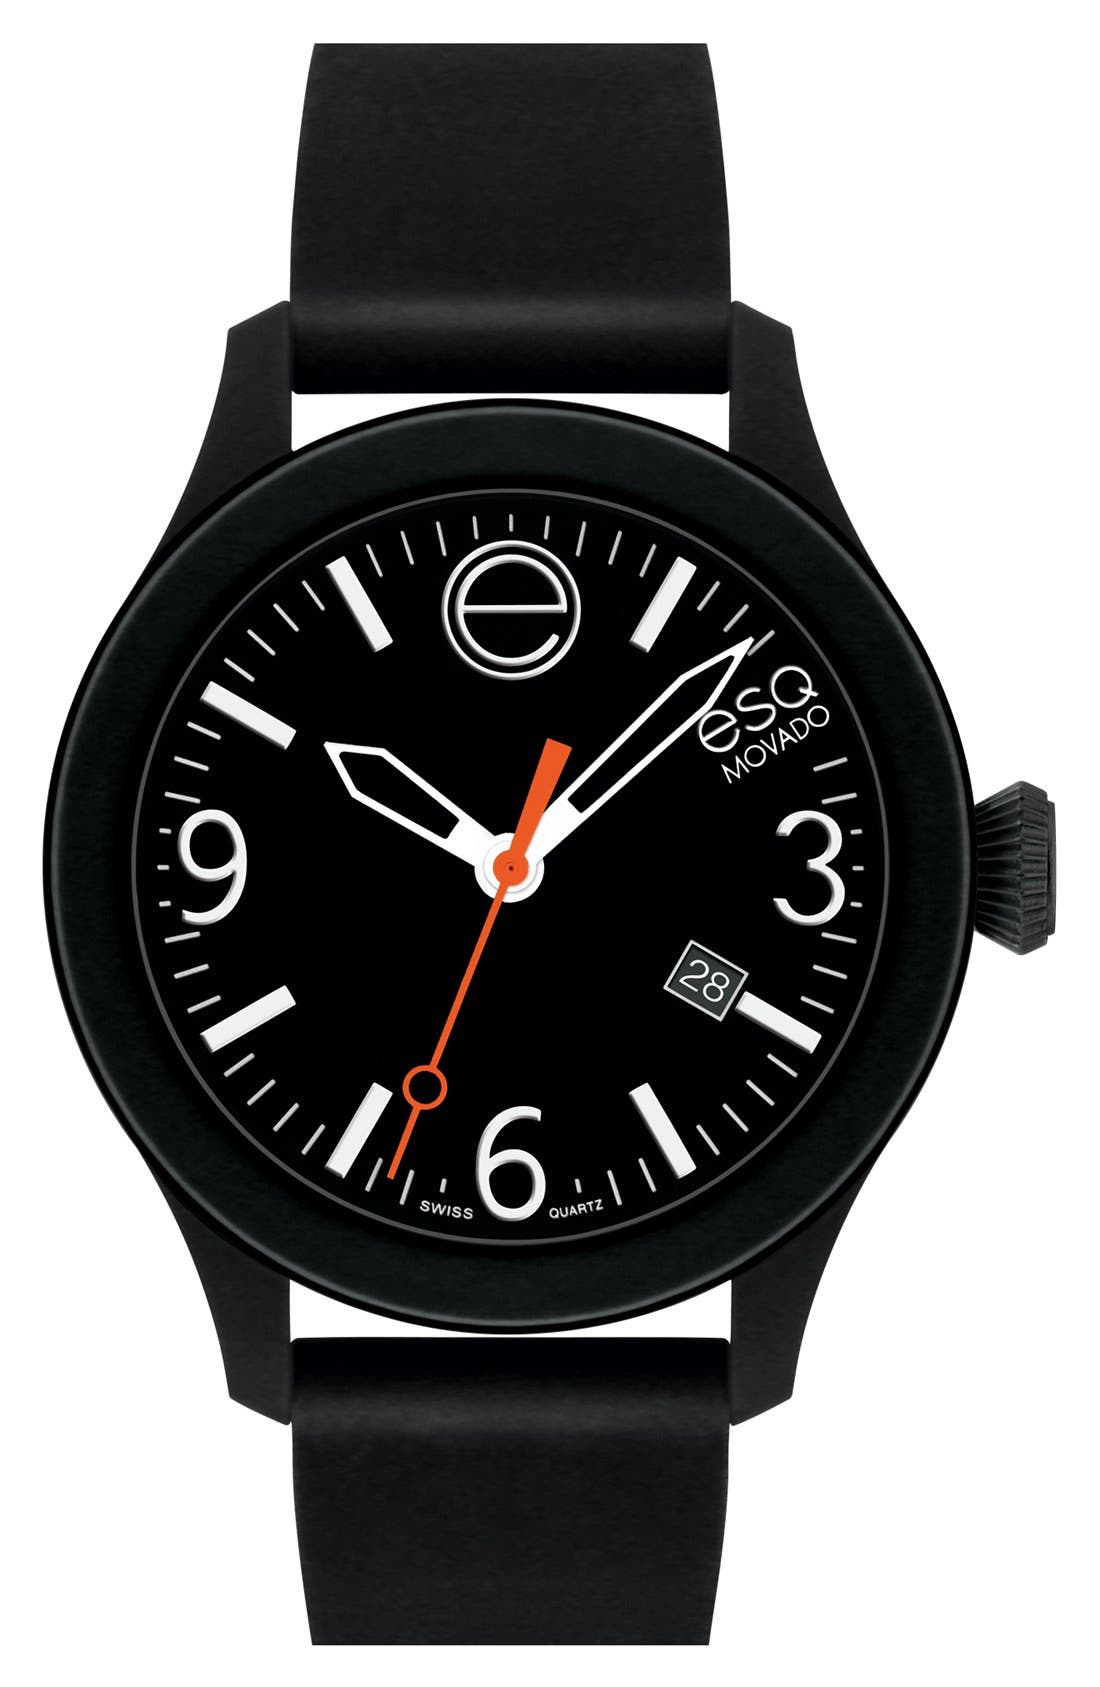 Main Image - ESQ Movado 'One' Silicone Strap Watch, 42mm